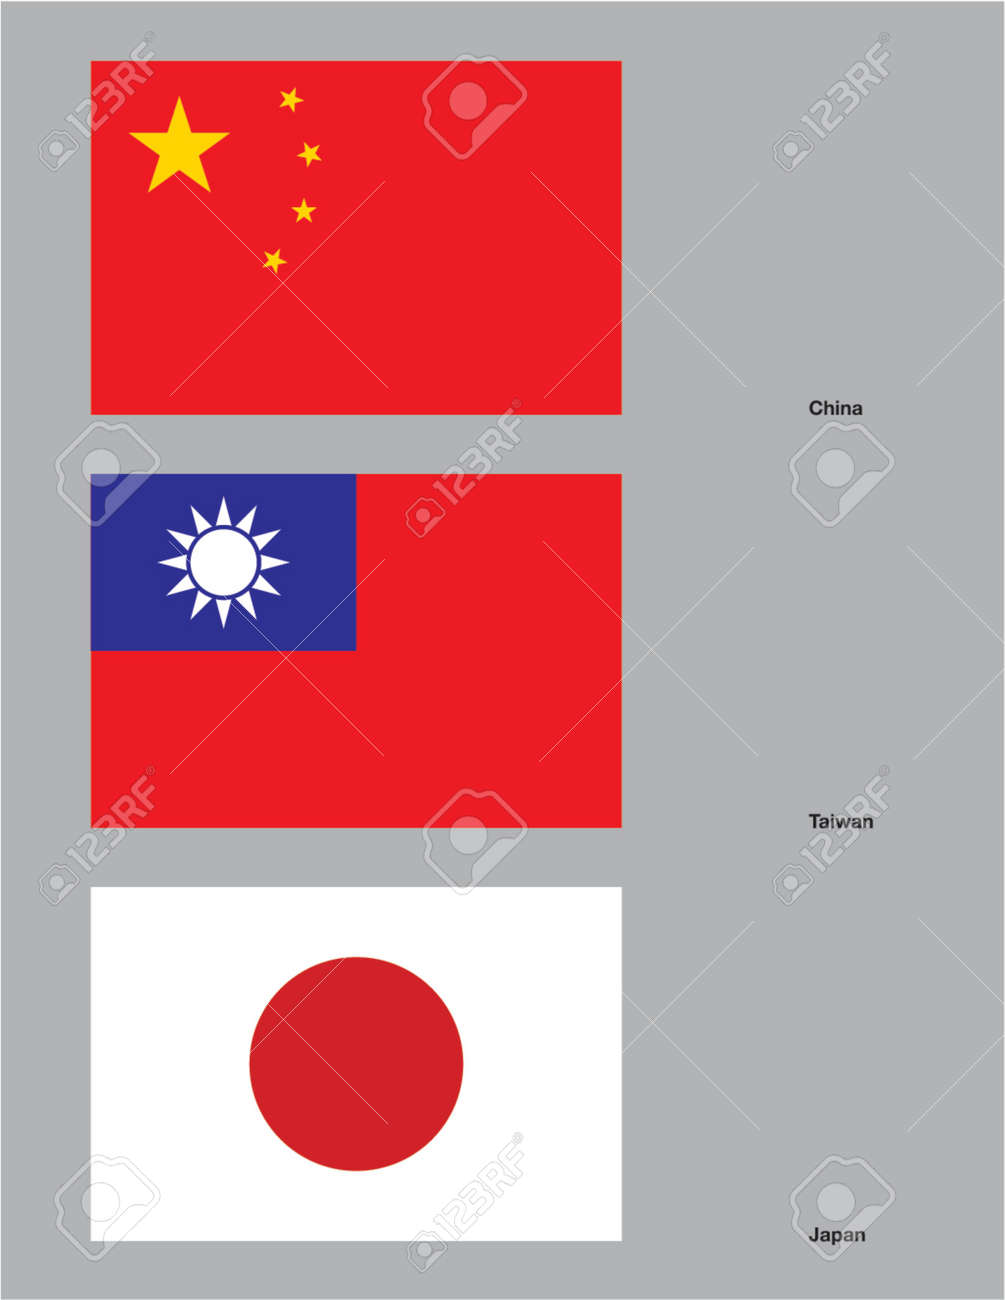 the flags of china taiwan and japan drawn in cmyk and placed